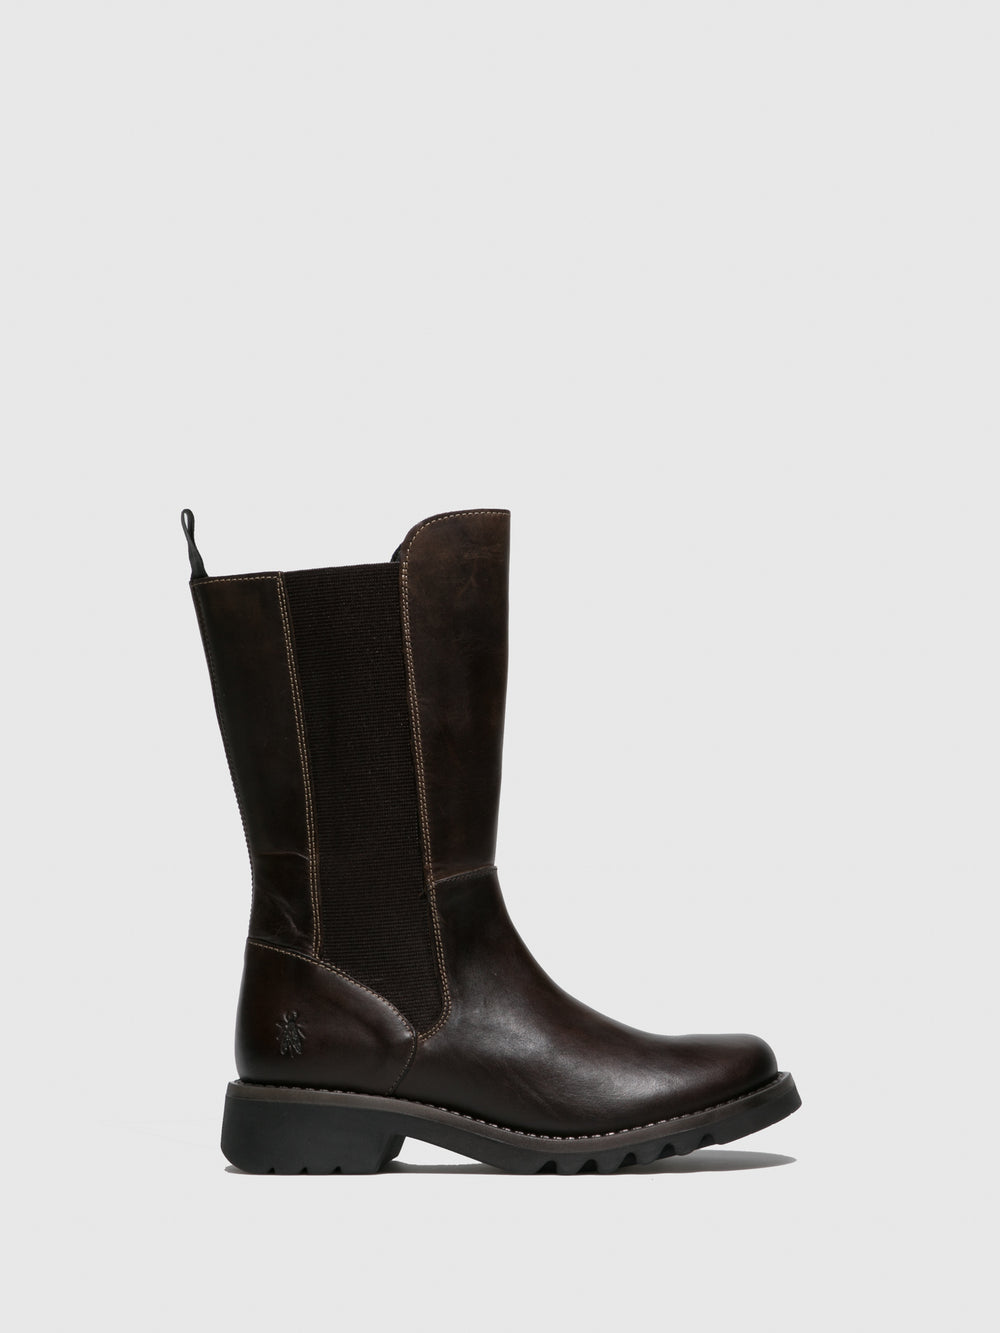 Chelsea Boots RELM641FLY RUG DK.BROWN